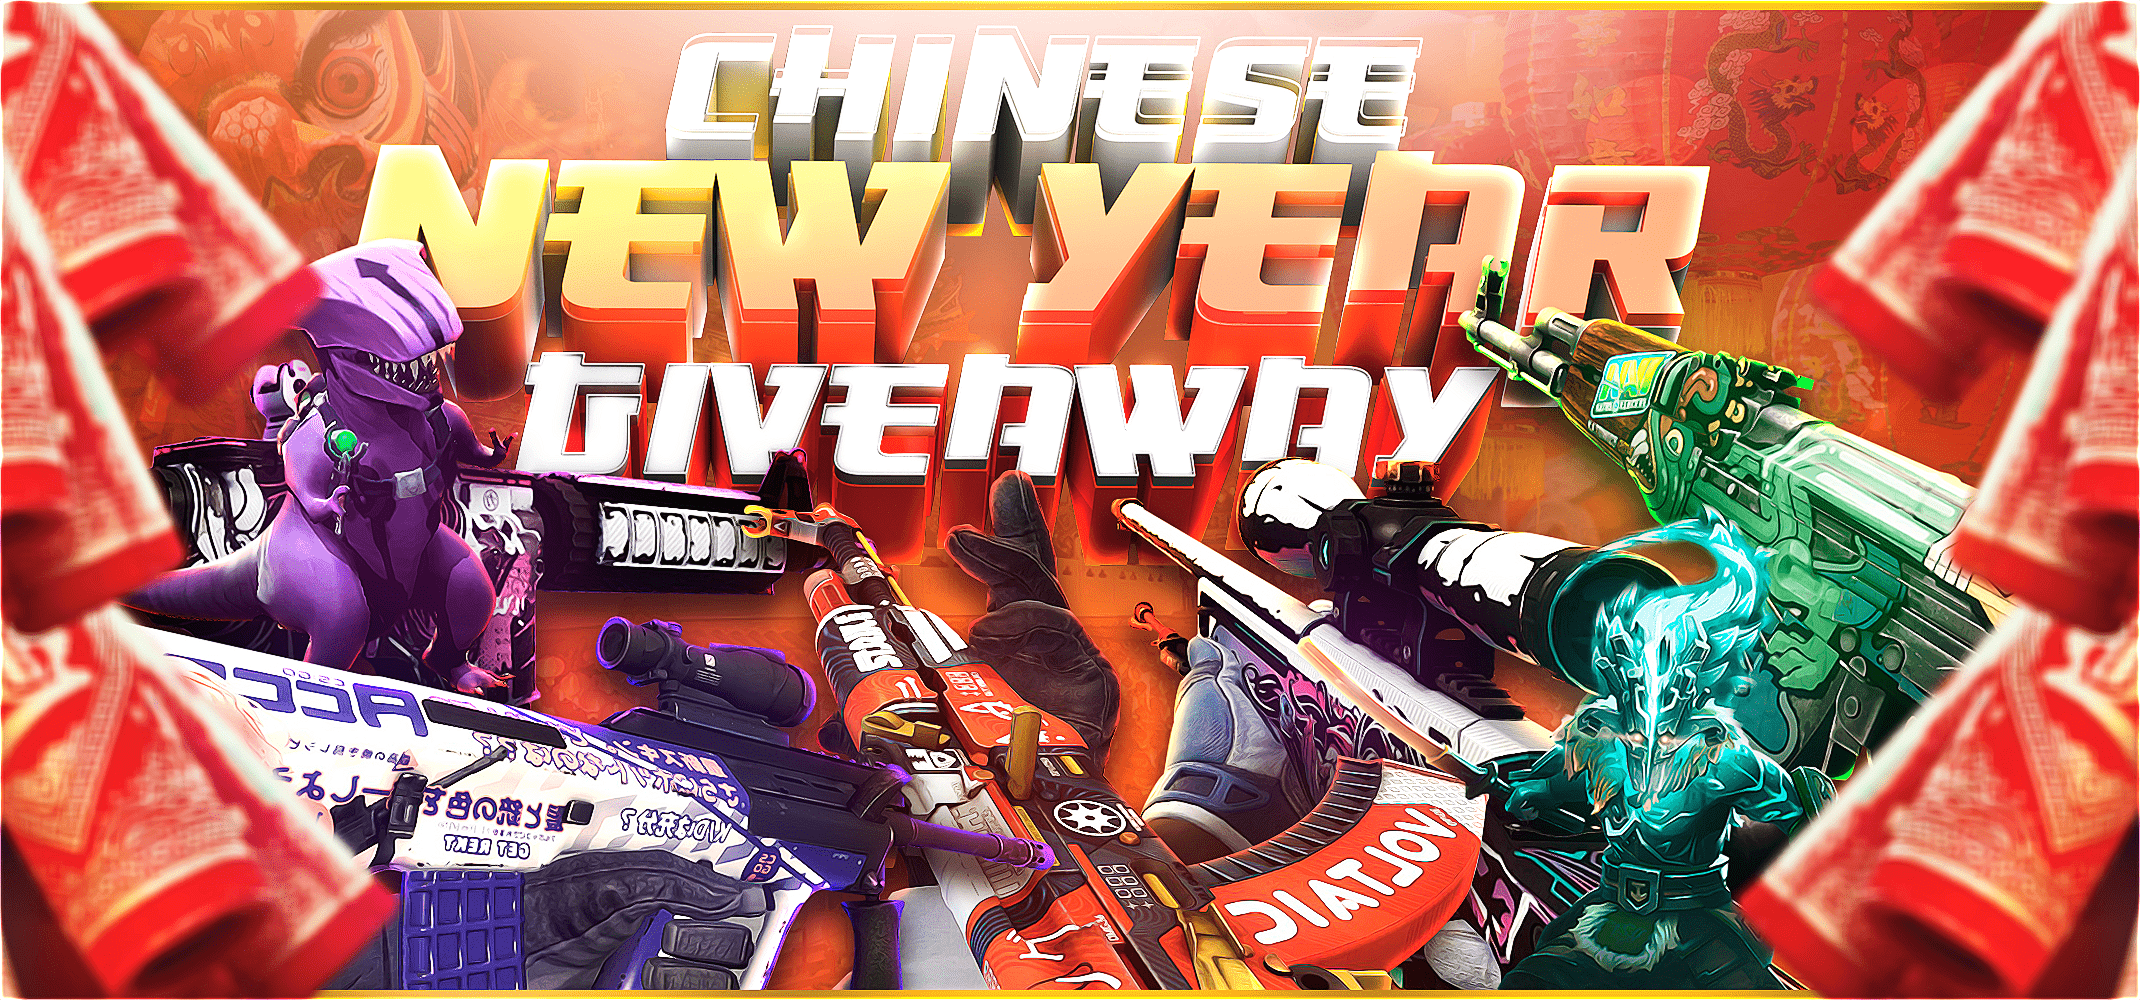 Chinese New Year Giveaway Image